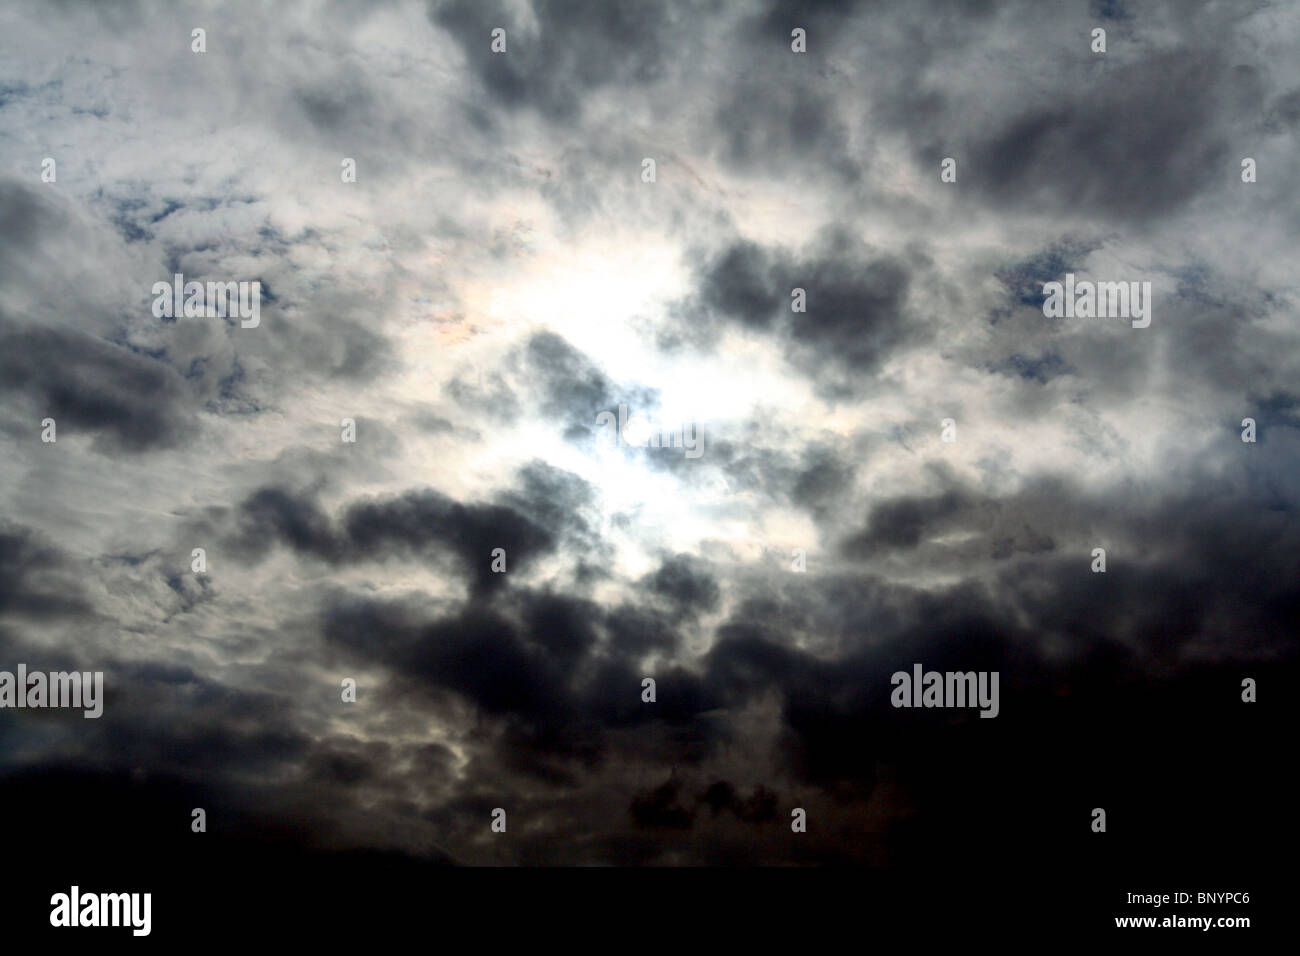 a dark and foreboding sky with the sun in the center burning through the clouds - Stock Image